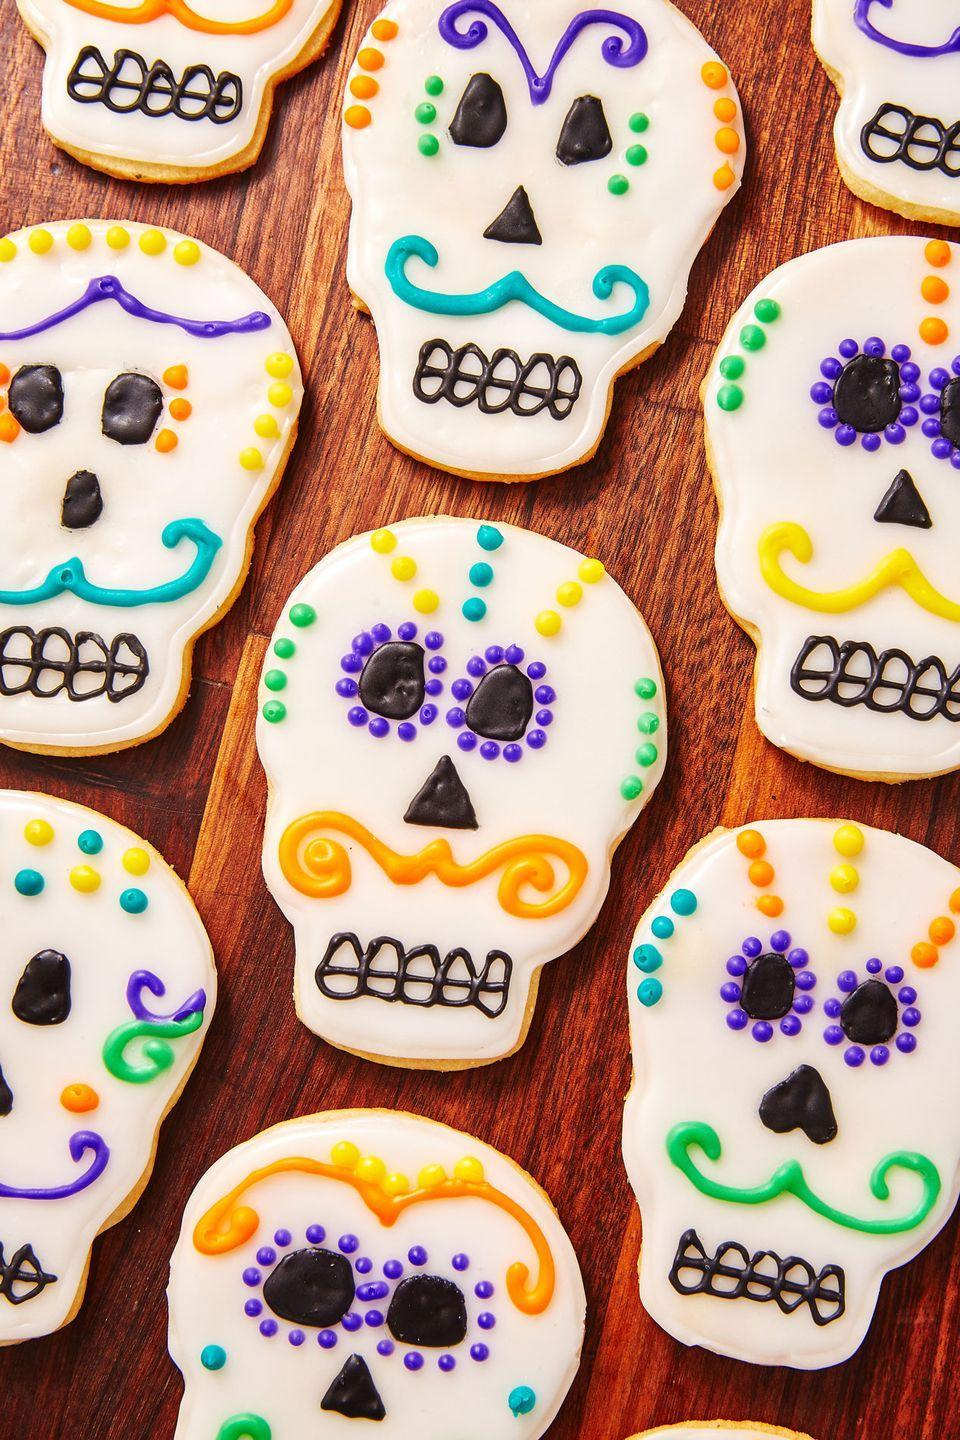 "<p>These colorfully decorated sugar cookies are almost too pretty to eat.</p><p>Get the recipe from <a href=""https://www.delish.com/holiday-recipes/halloween/a29005020/day-of-the-dead-cookies-recipe/"" rel=""nofollow noopener"" target=""_blank"" data-ylk=""slk:Delish"" class=""link rapid-noclick-resp"">Delish</a>.</p>"